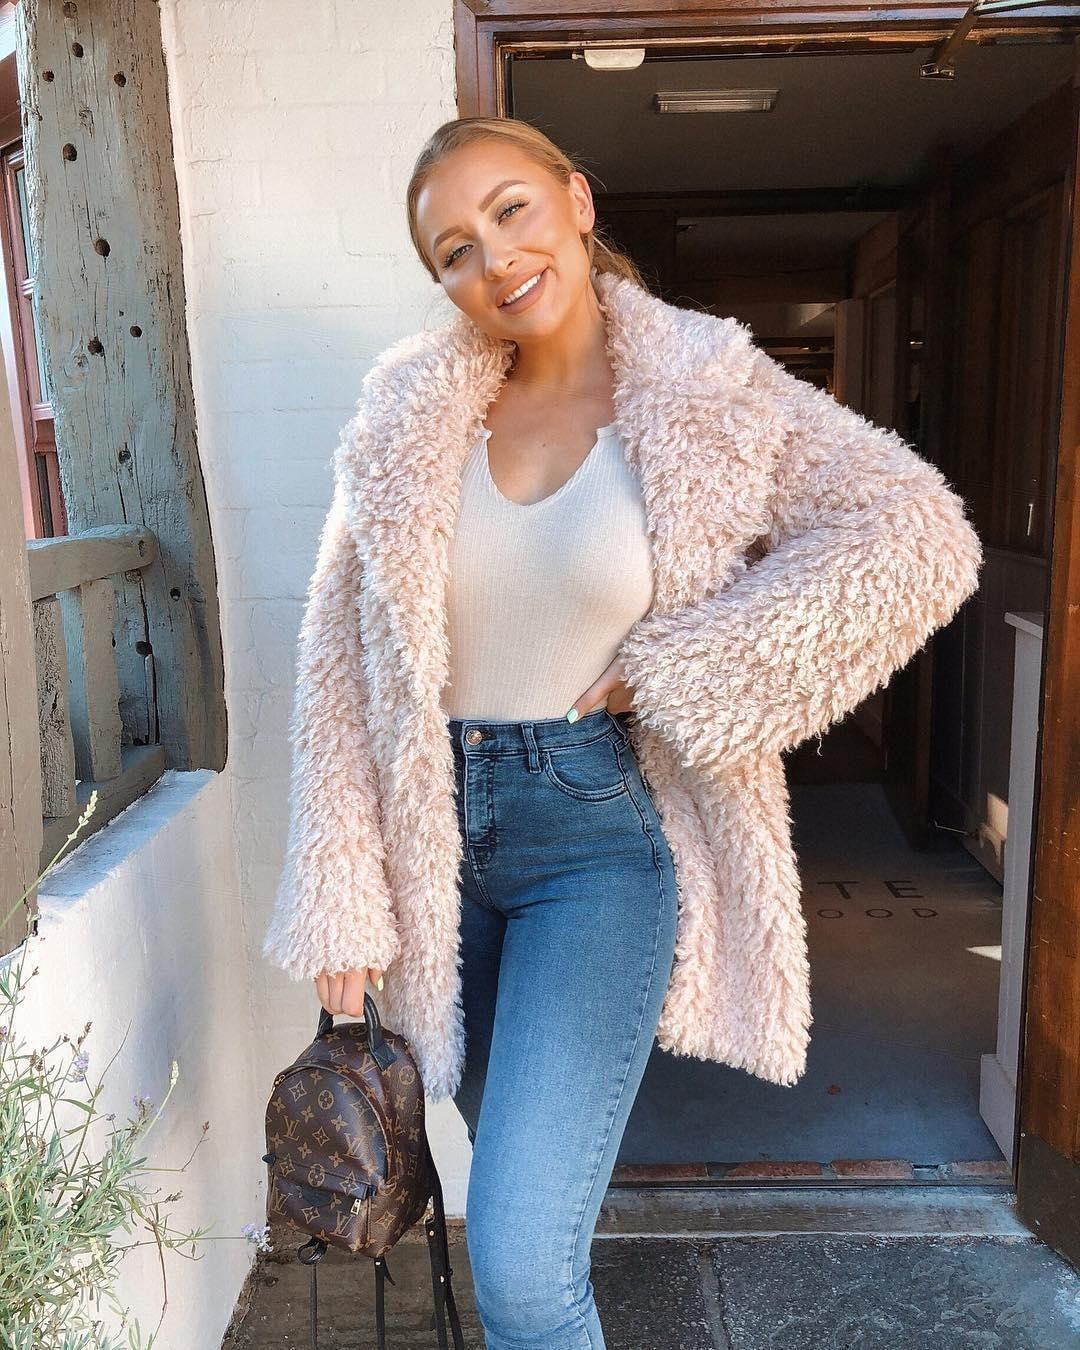 b50a9d1096 FUR SEASON 💕🐻 Obsessed with @sarahhashcroft in the White rib button top,  Mid wash split hem jeans & Stone teddy faux fur coat 😍😍 Tap to shop 🙌